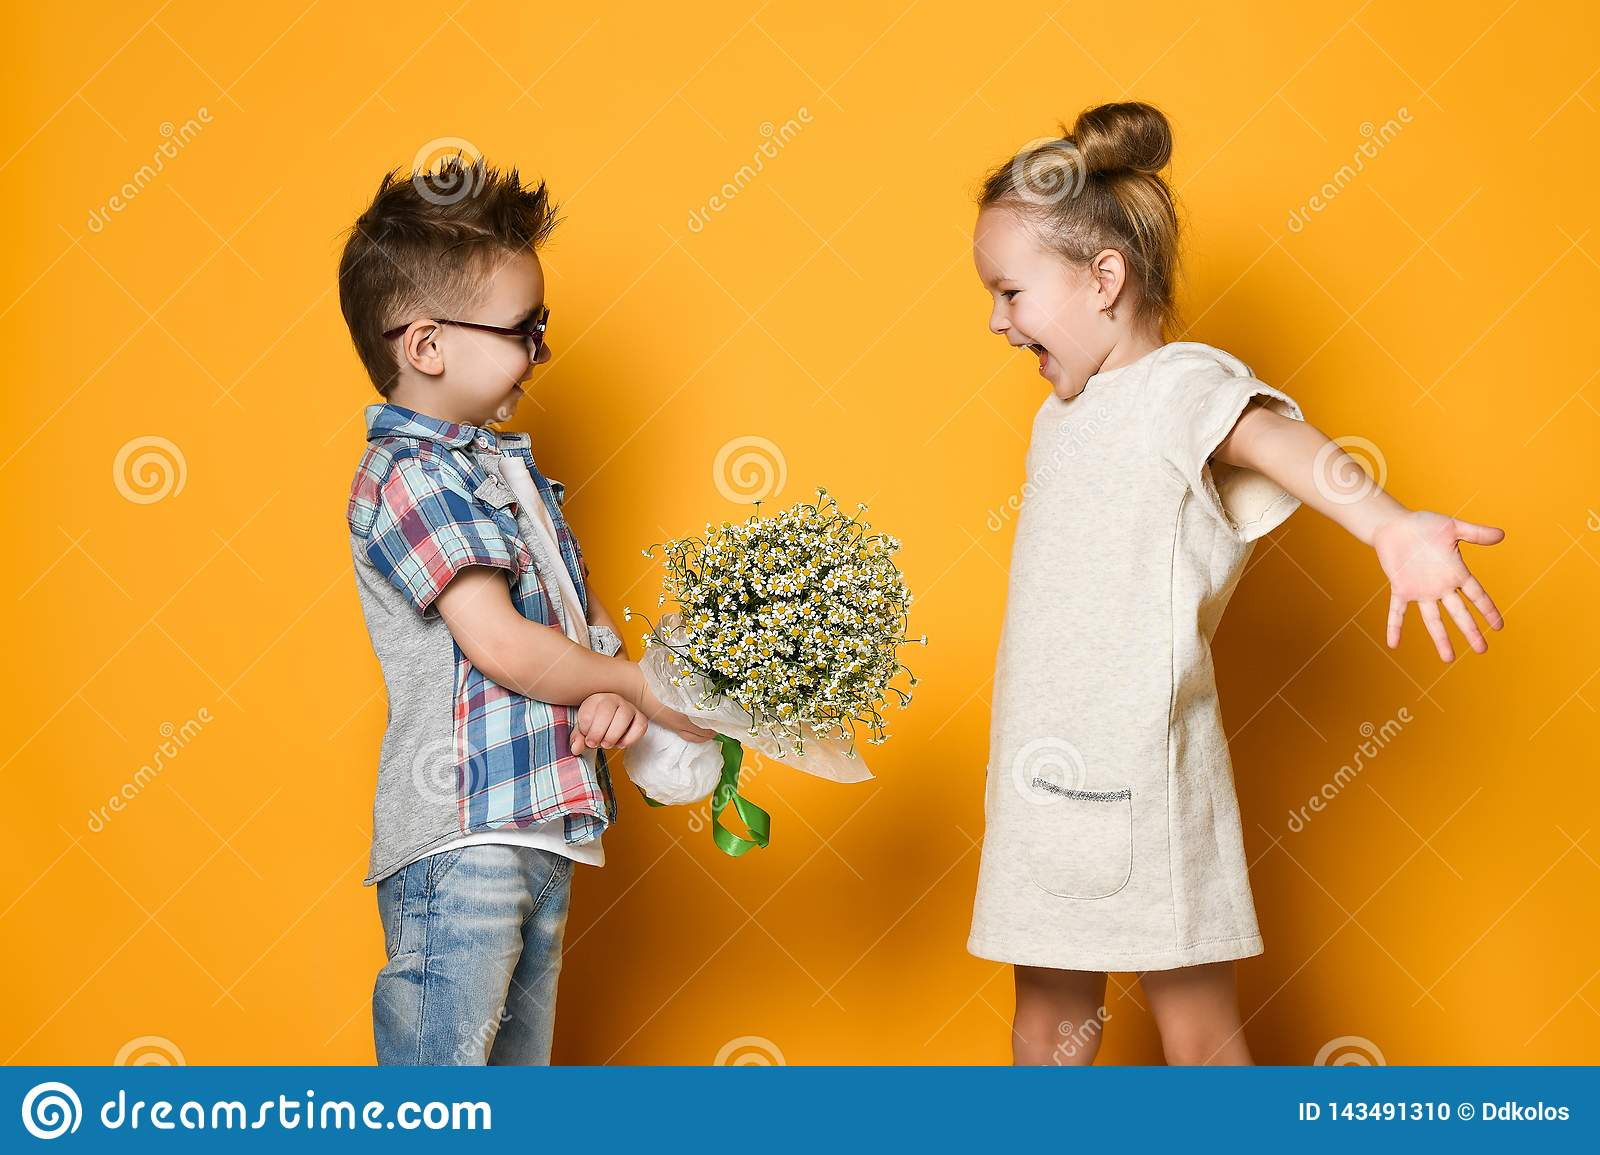 Happy caucasian people boy gives a flowers to his girlfriend isolated over yellow background.